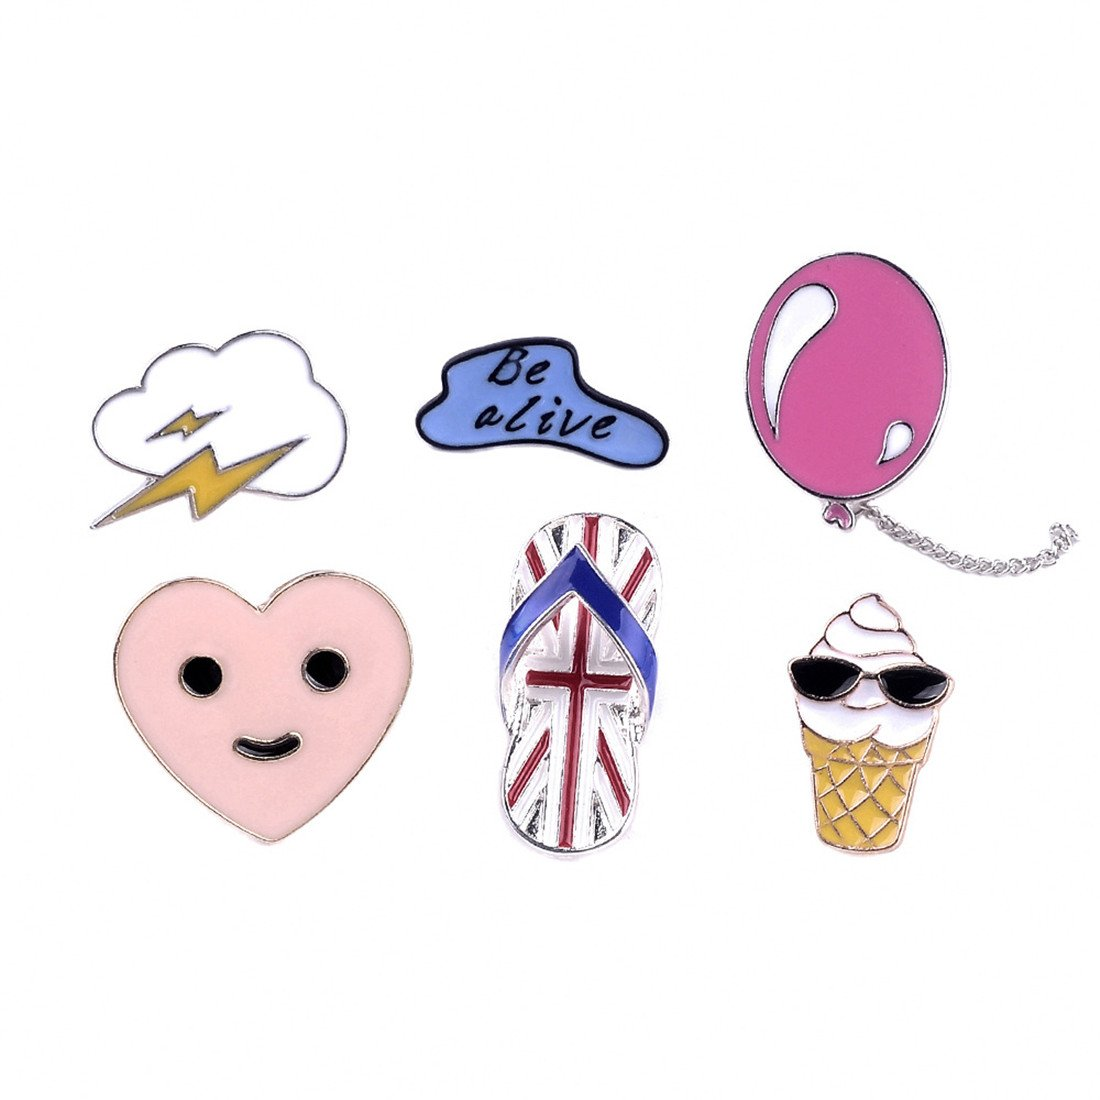 Onnea Enamel Brooch Pin Set Brooches Patches for Clothes/Bags/Backpacks (Lightning balloon pin set)